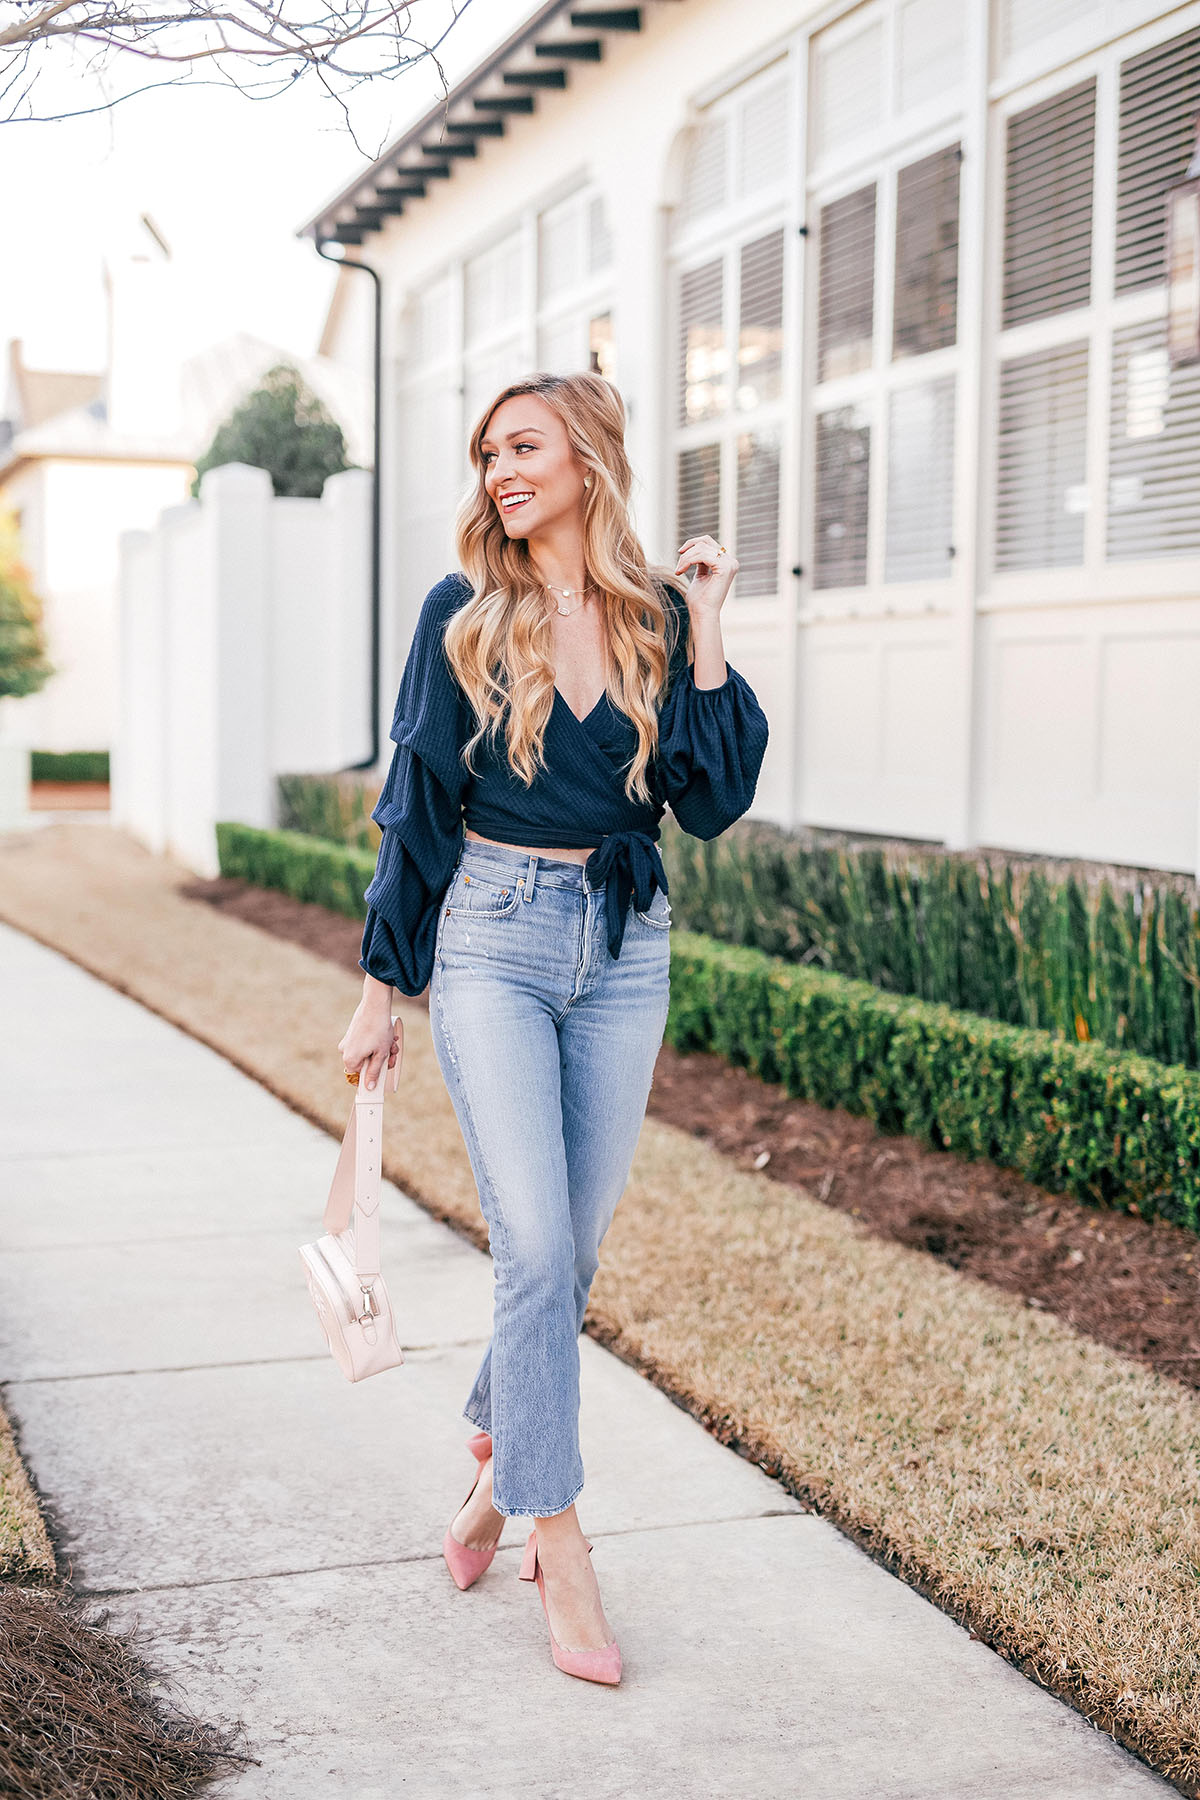 4 Tips On Delegating Tasks + Cropped Denim For Spring